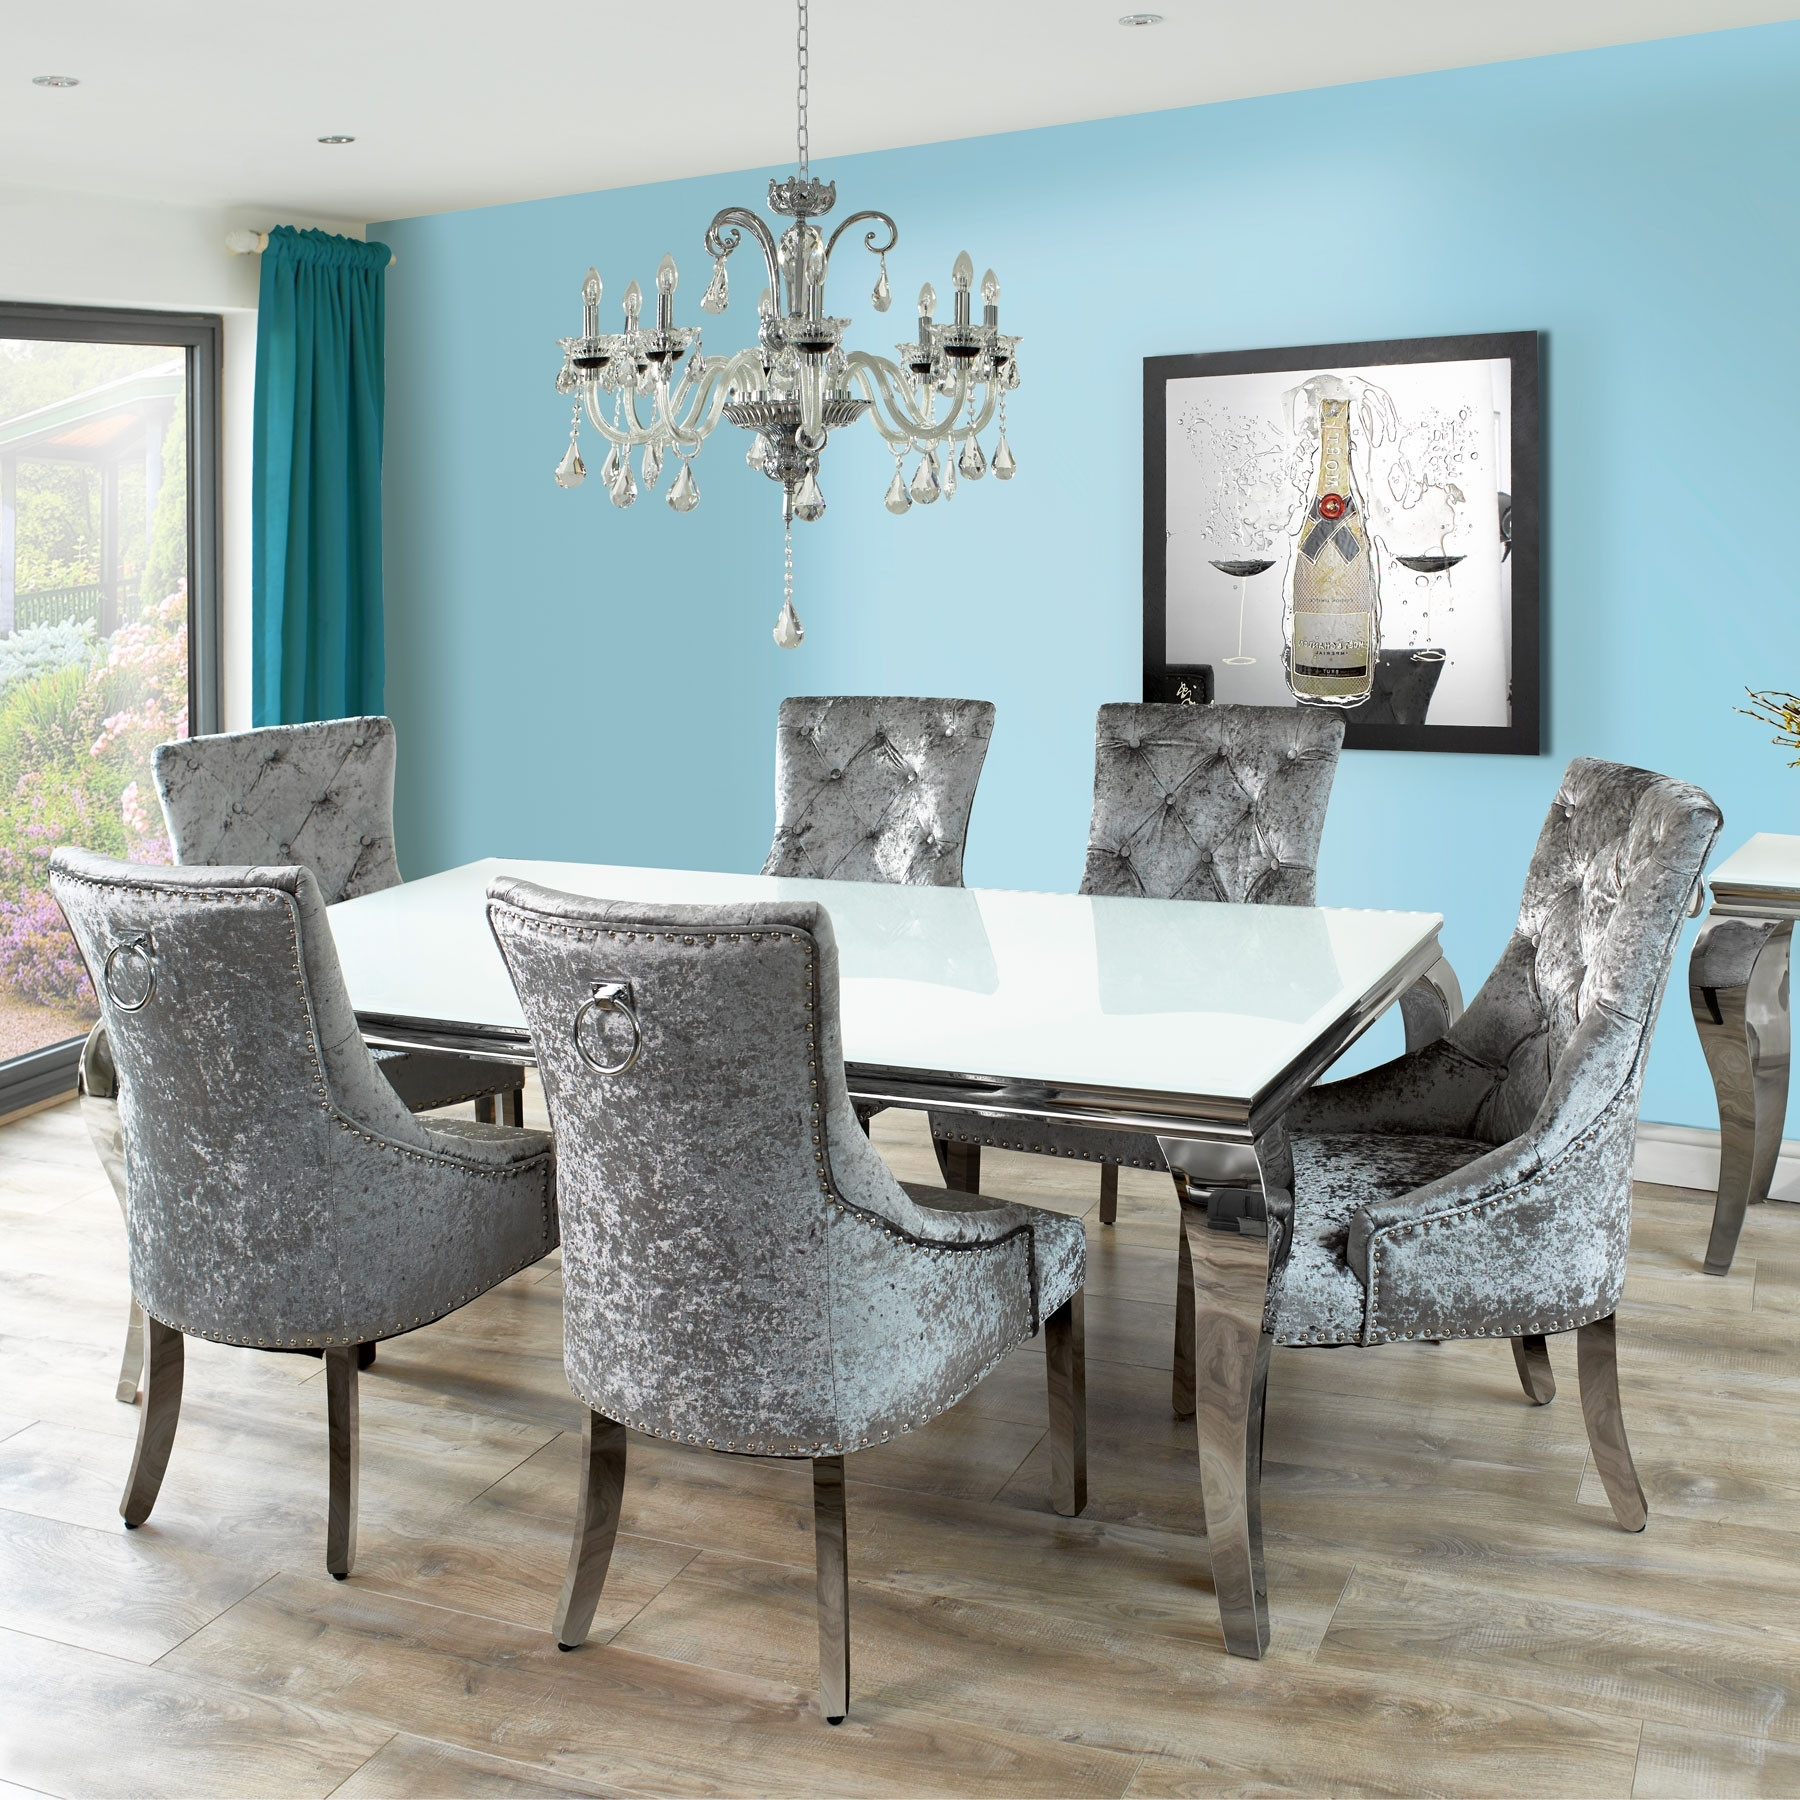 Well Liked Fadenza Small White Glass Dining Table & 4 Silver Chairs With In Glass Dining Tables With 6 Chairs (View 8 of 25)